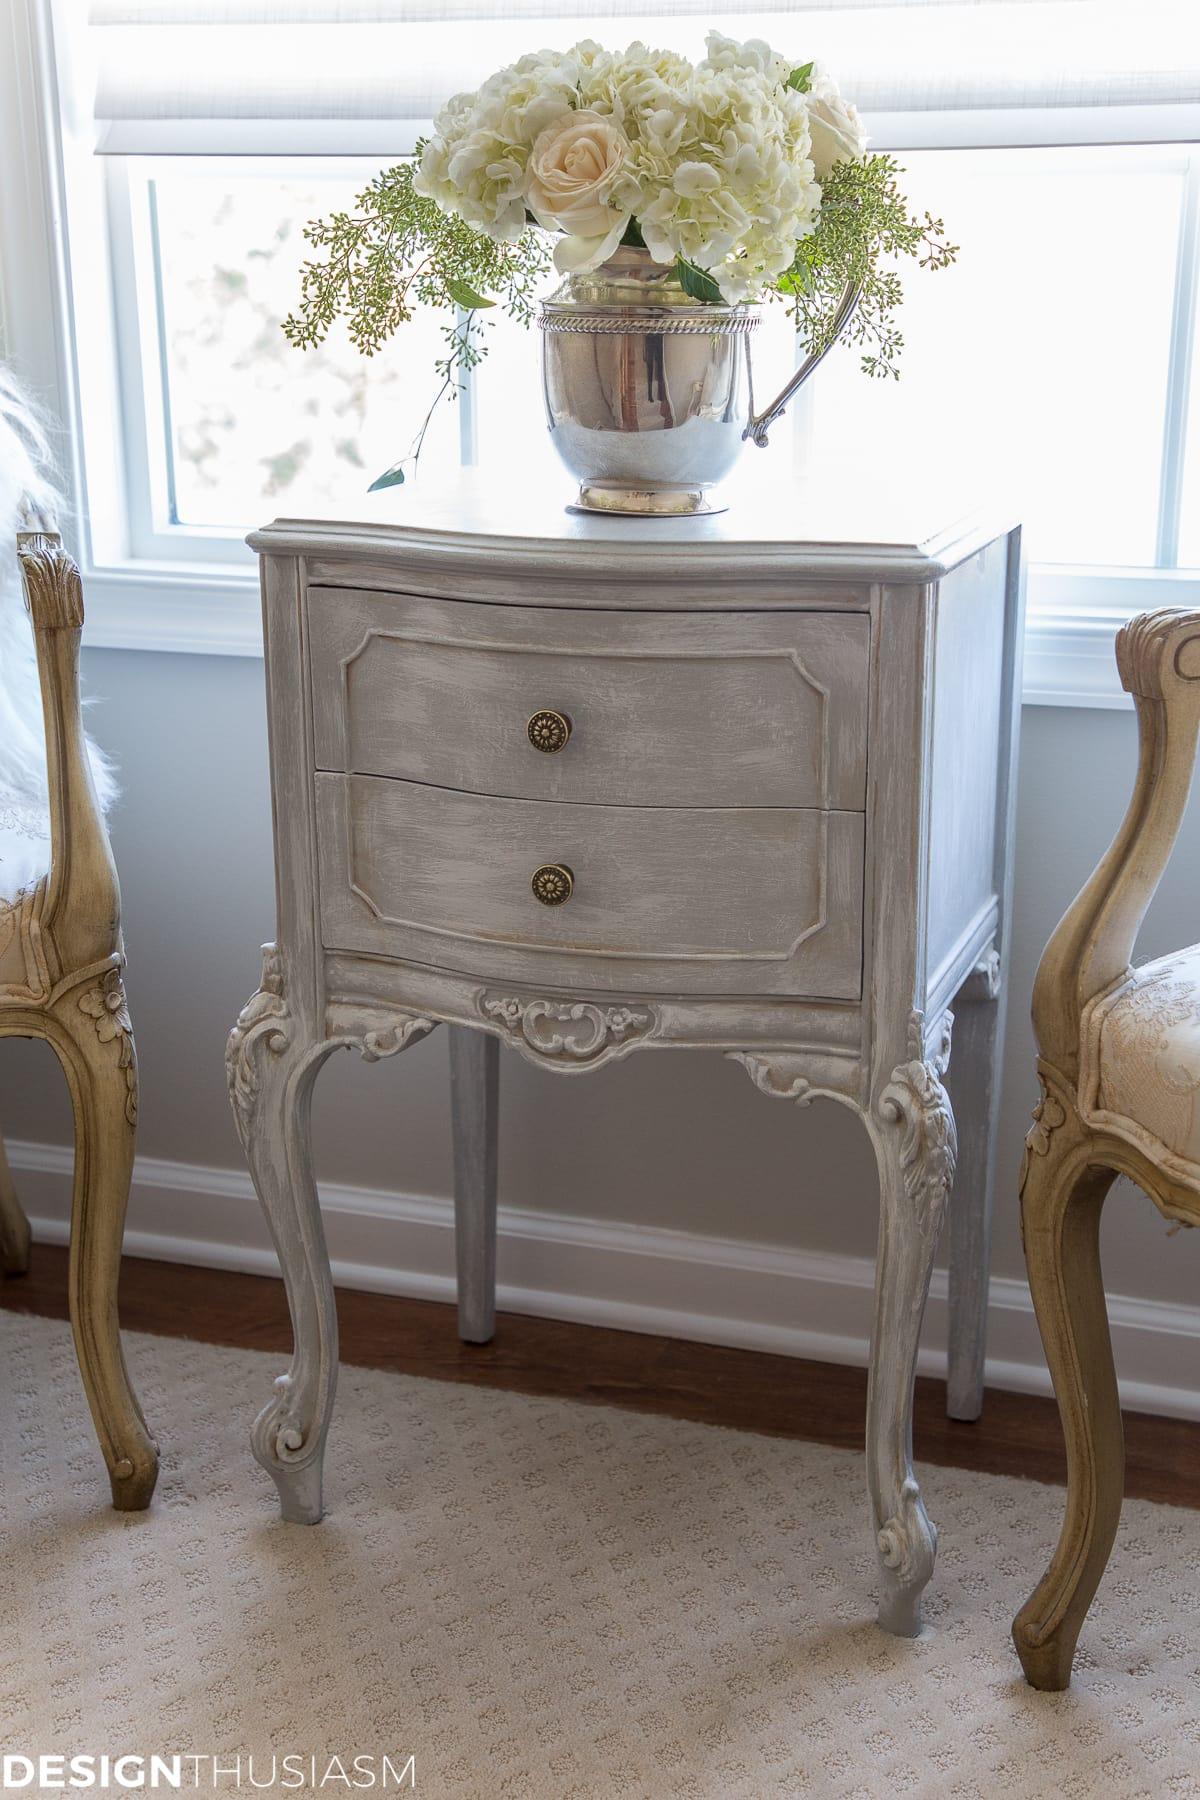 DIY painted furniture decor